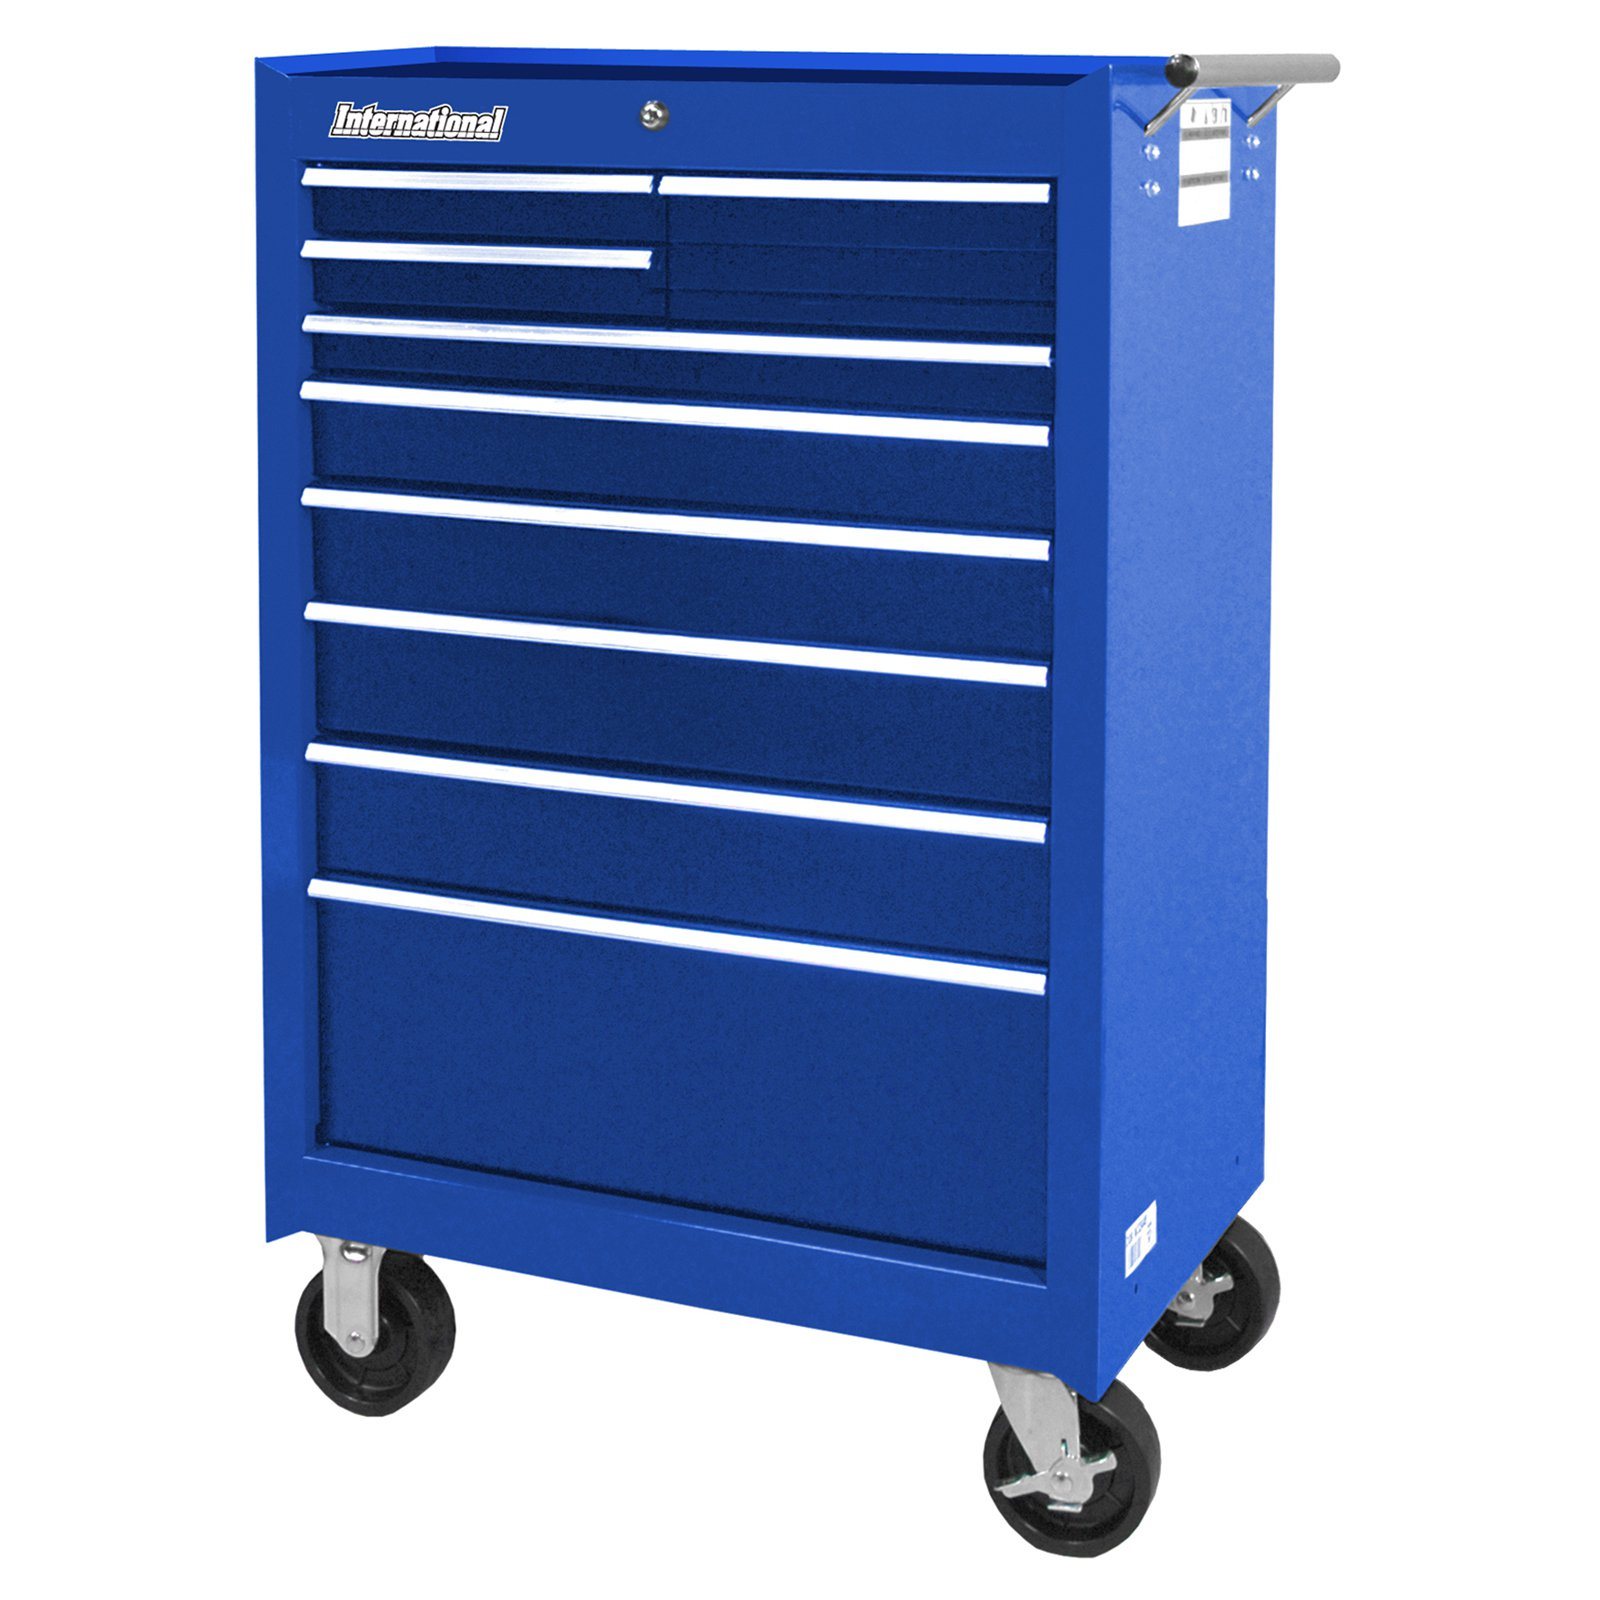 "International Workshop Series 27"" 9-Drawer Ball Bearing Slides Roller Cabinet, Blue"